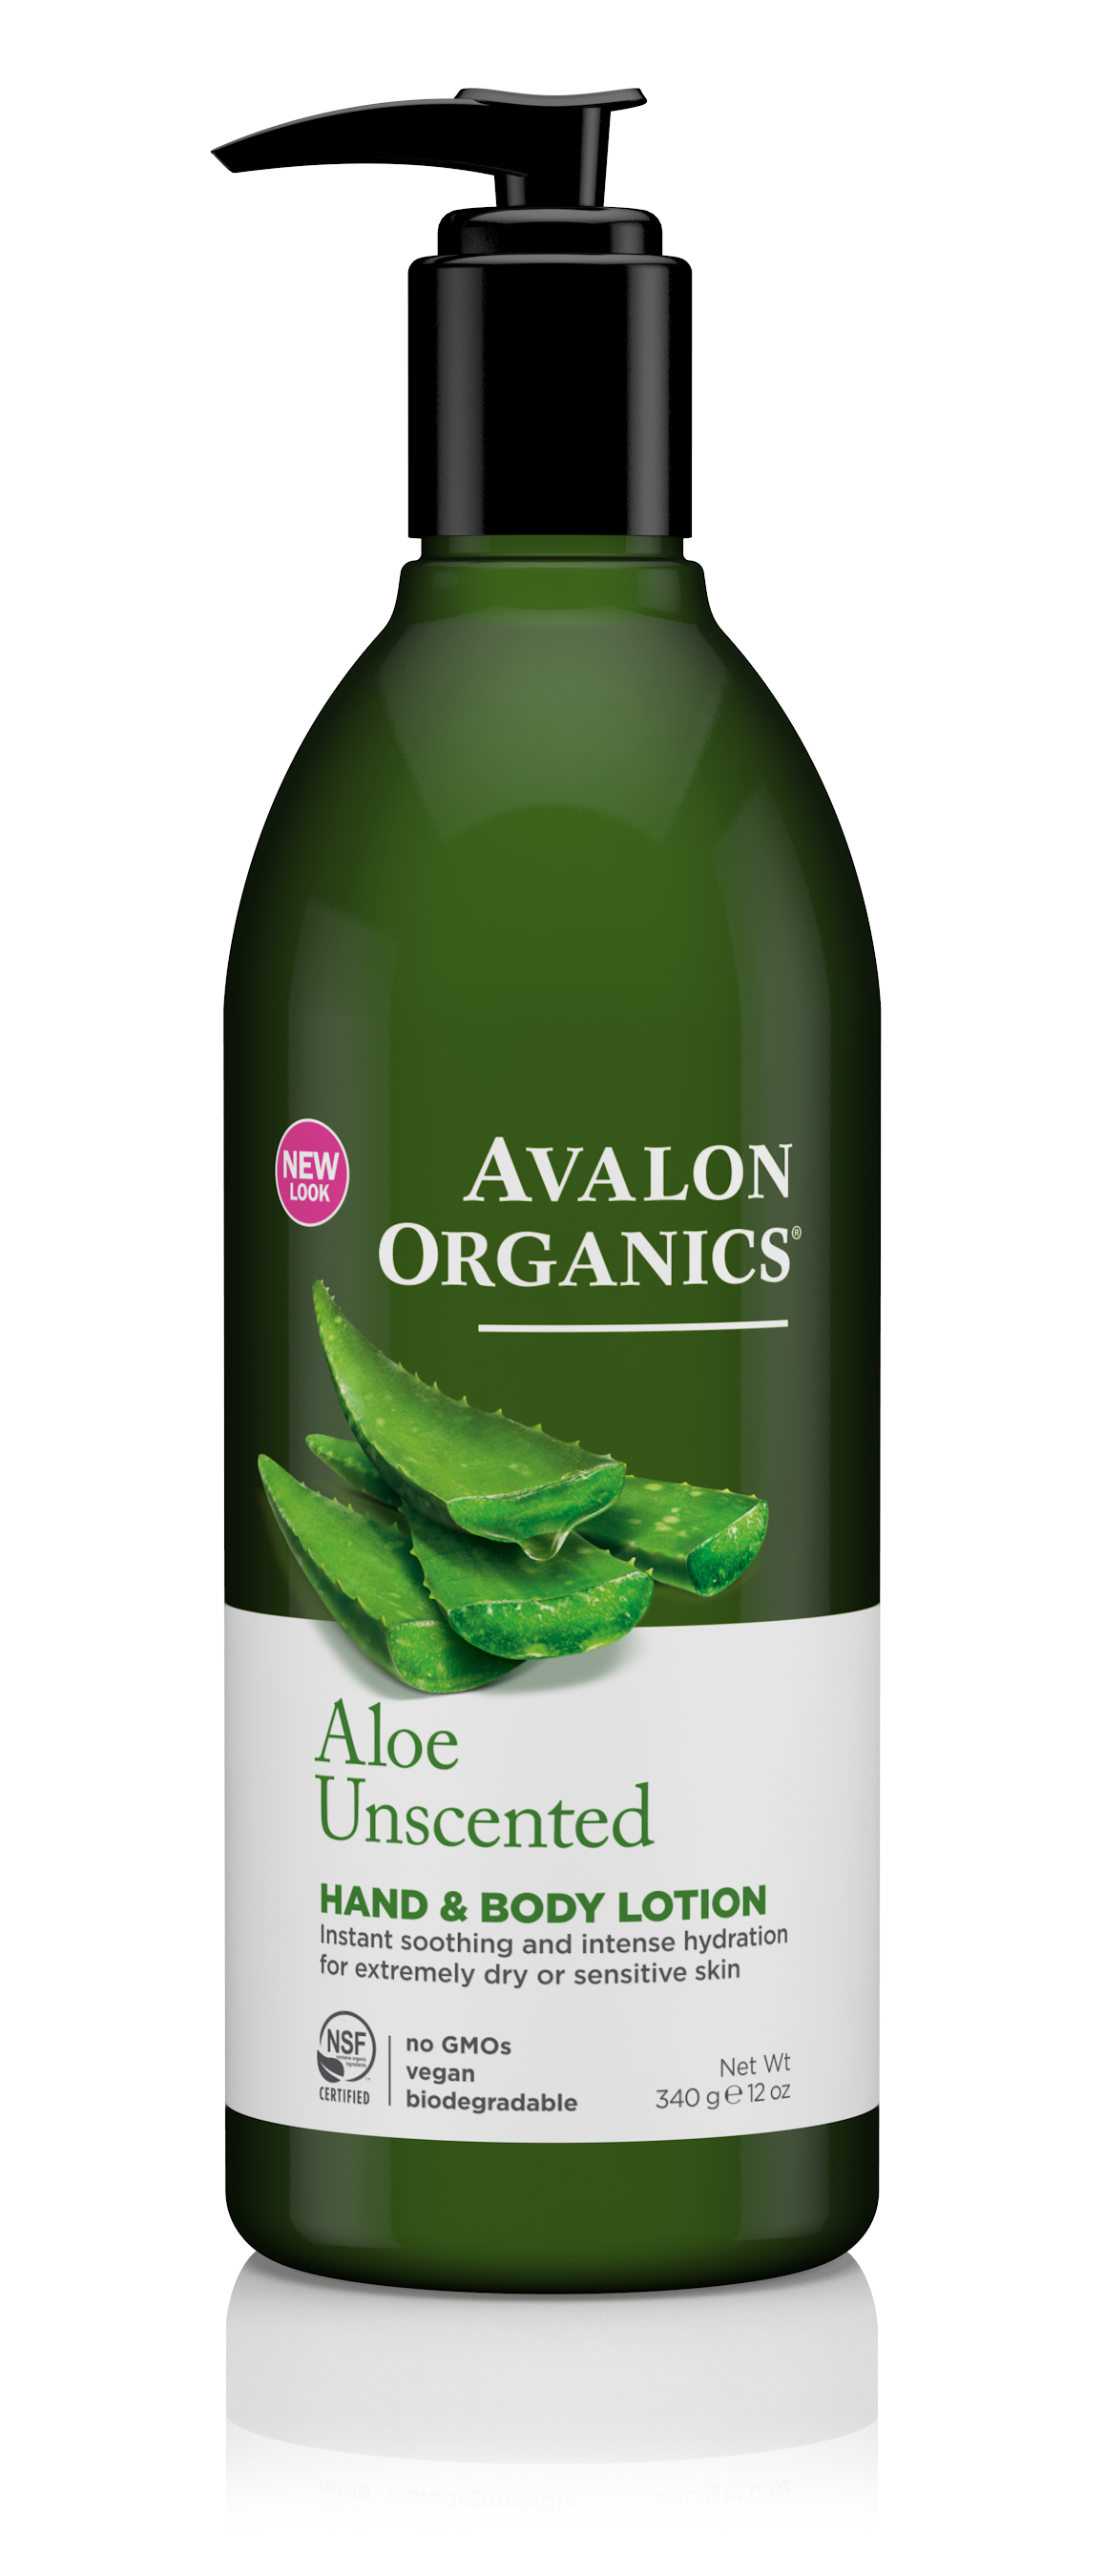 Avalon Organics Aloe Unscented Hand and Body Lotion 340g